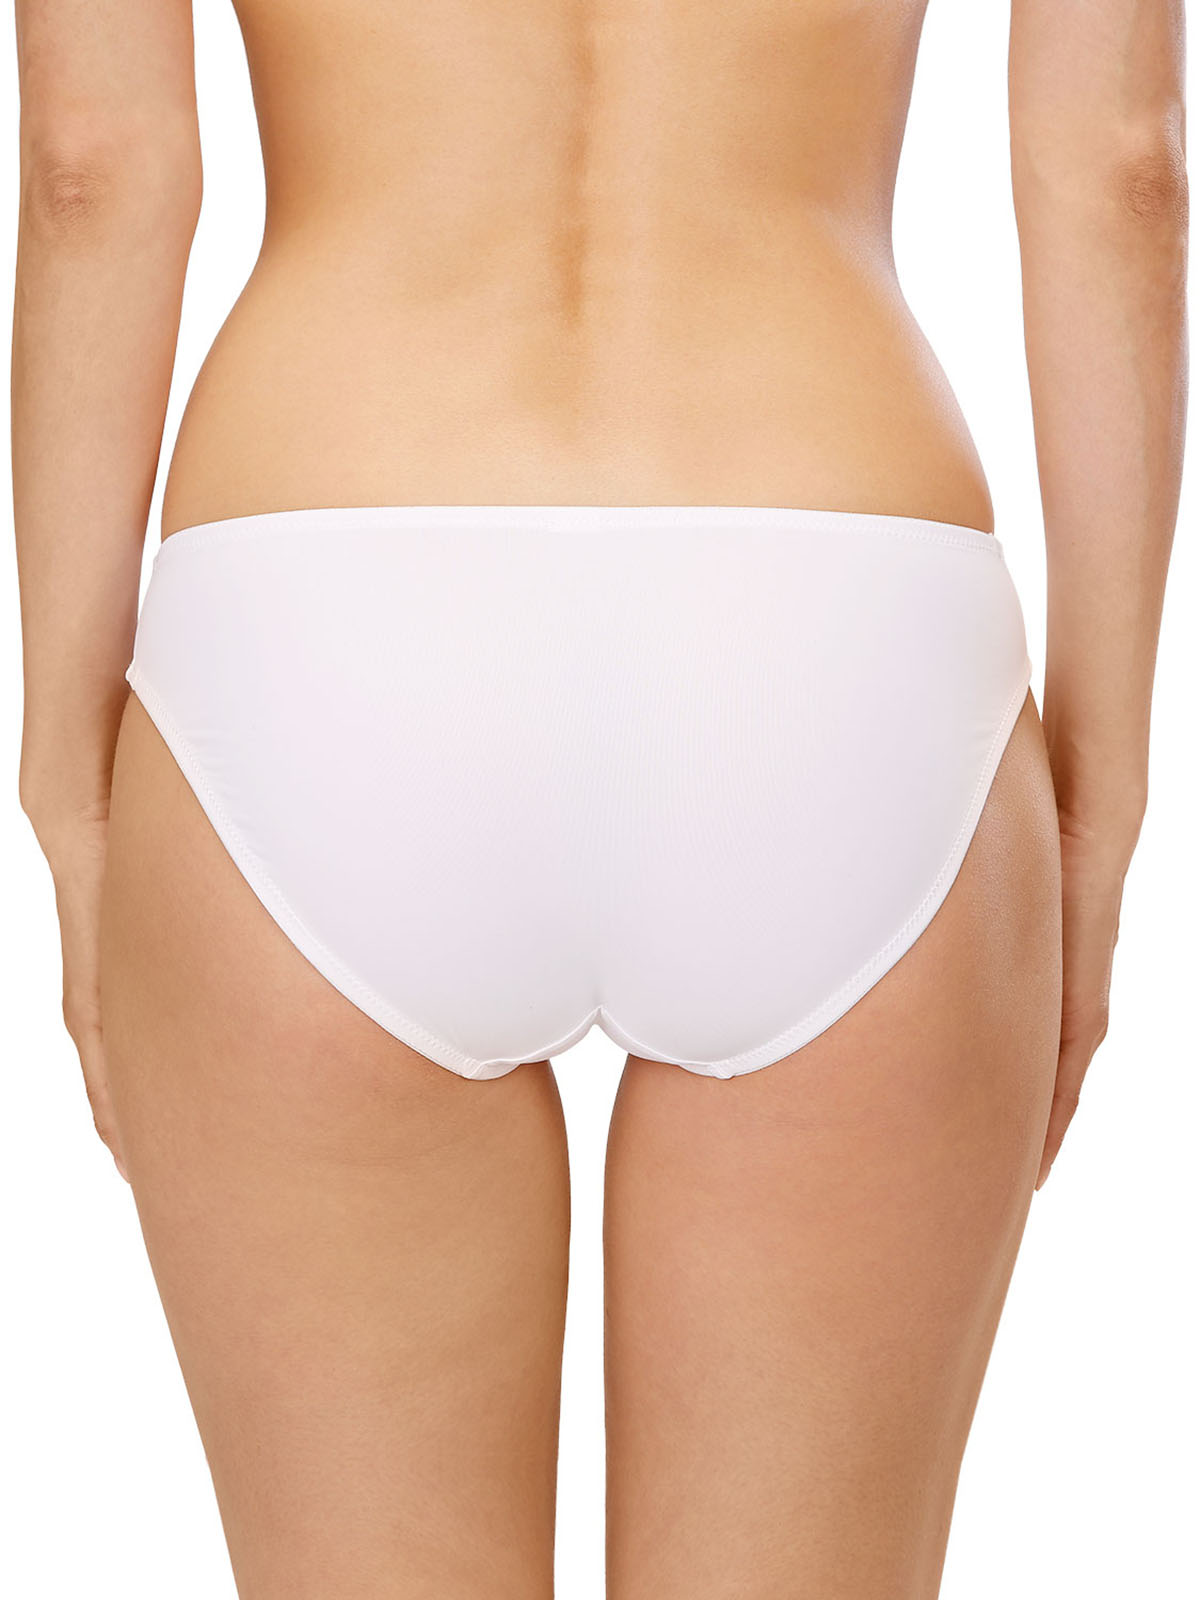 NATURANA Women's Brief 4667 S-XL